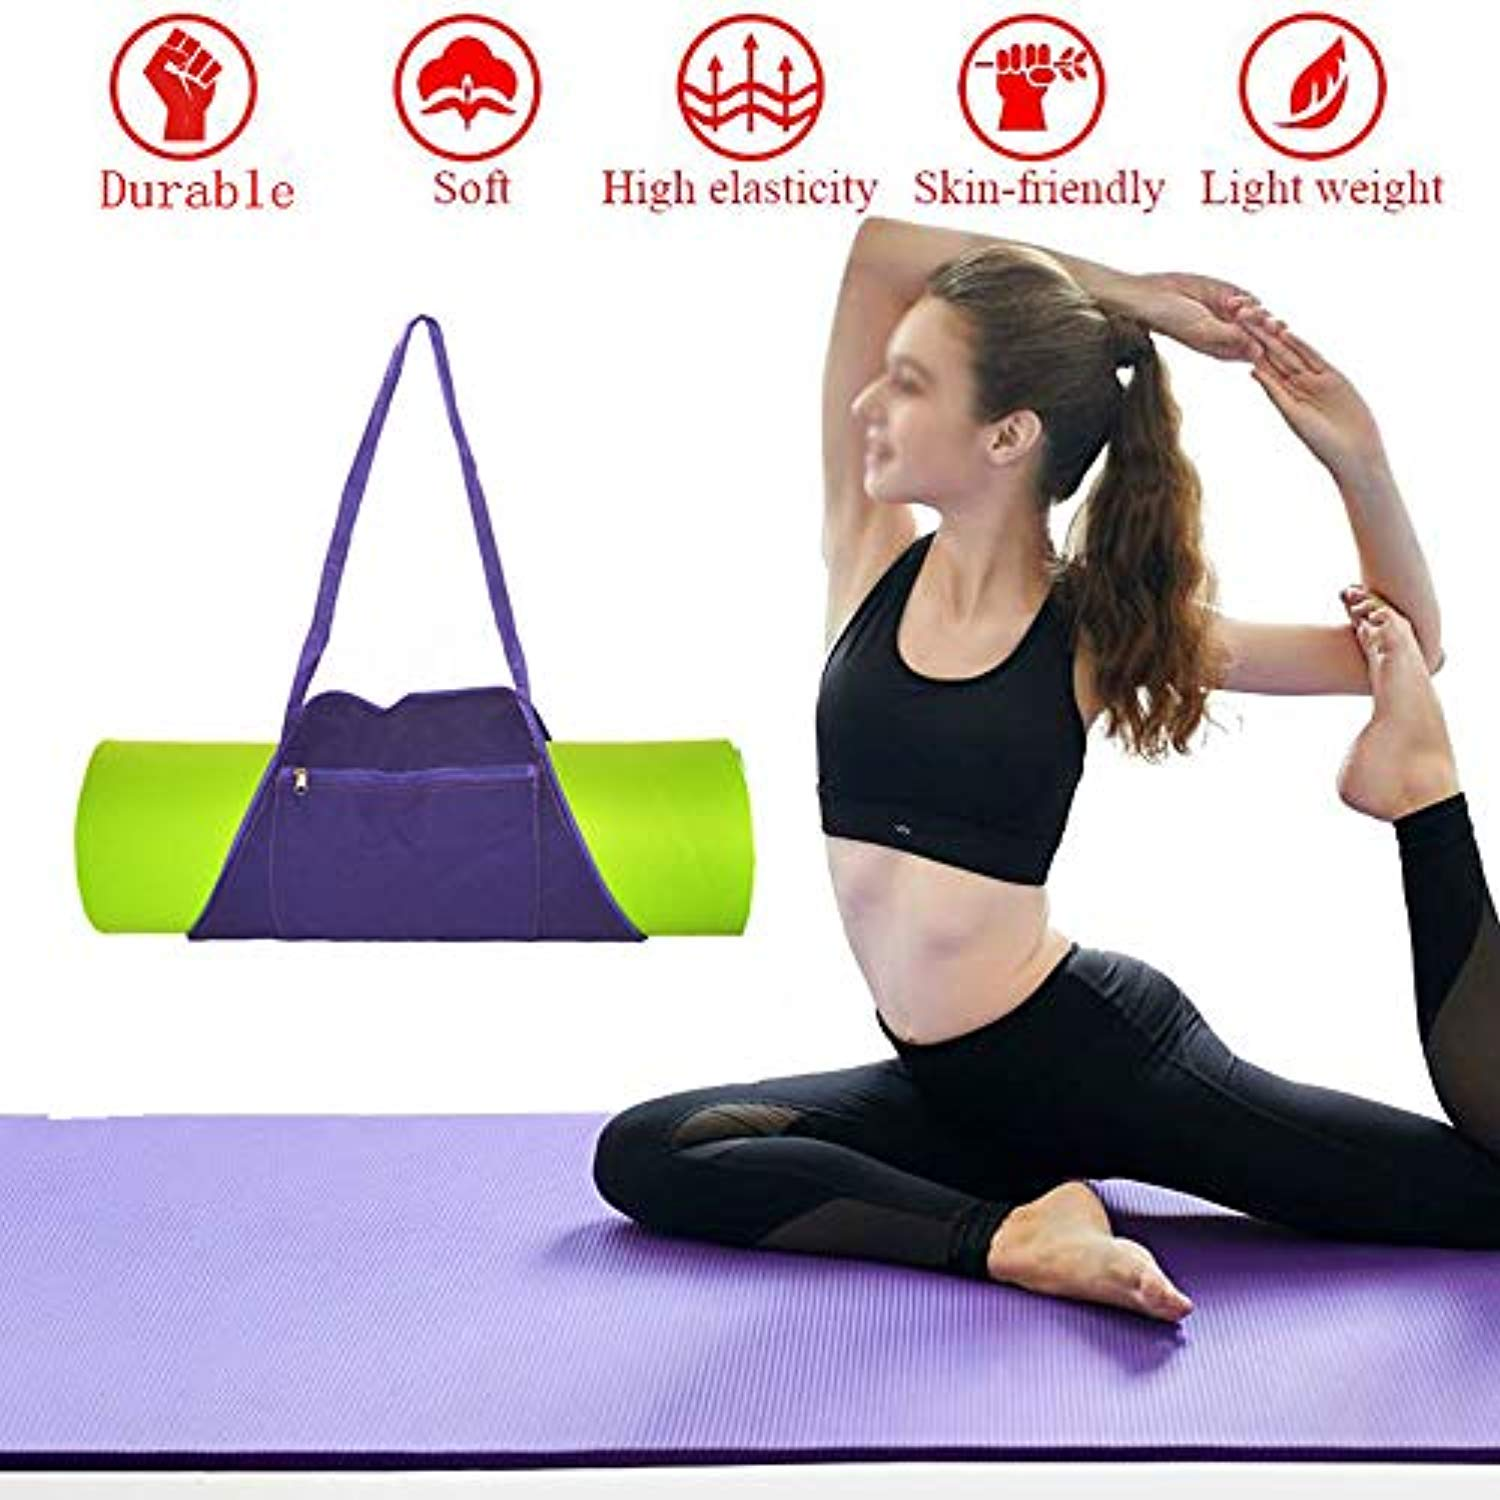 Ationgle Yoga Mat Bag | Outside Zip Closure Pocket | Exercise Yoga Mat Carrier, Sling Shoulder Bag Fits Most Size Mats (MAT is NOT Included), Canvas, Purple